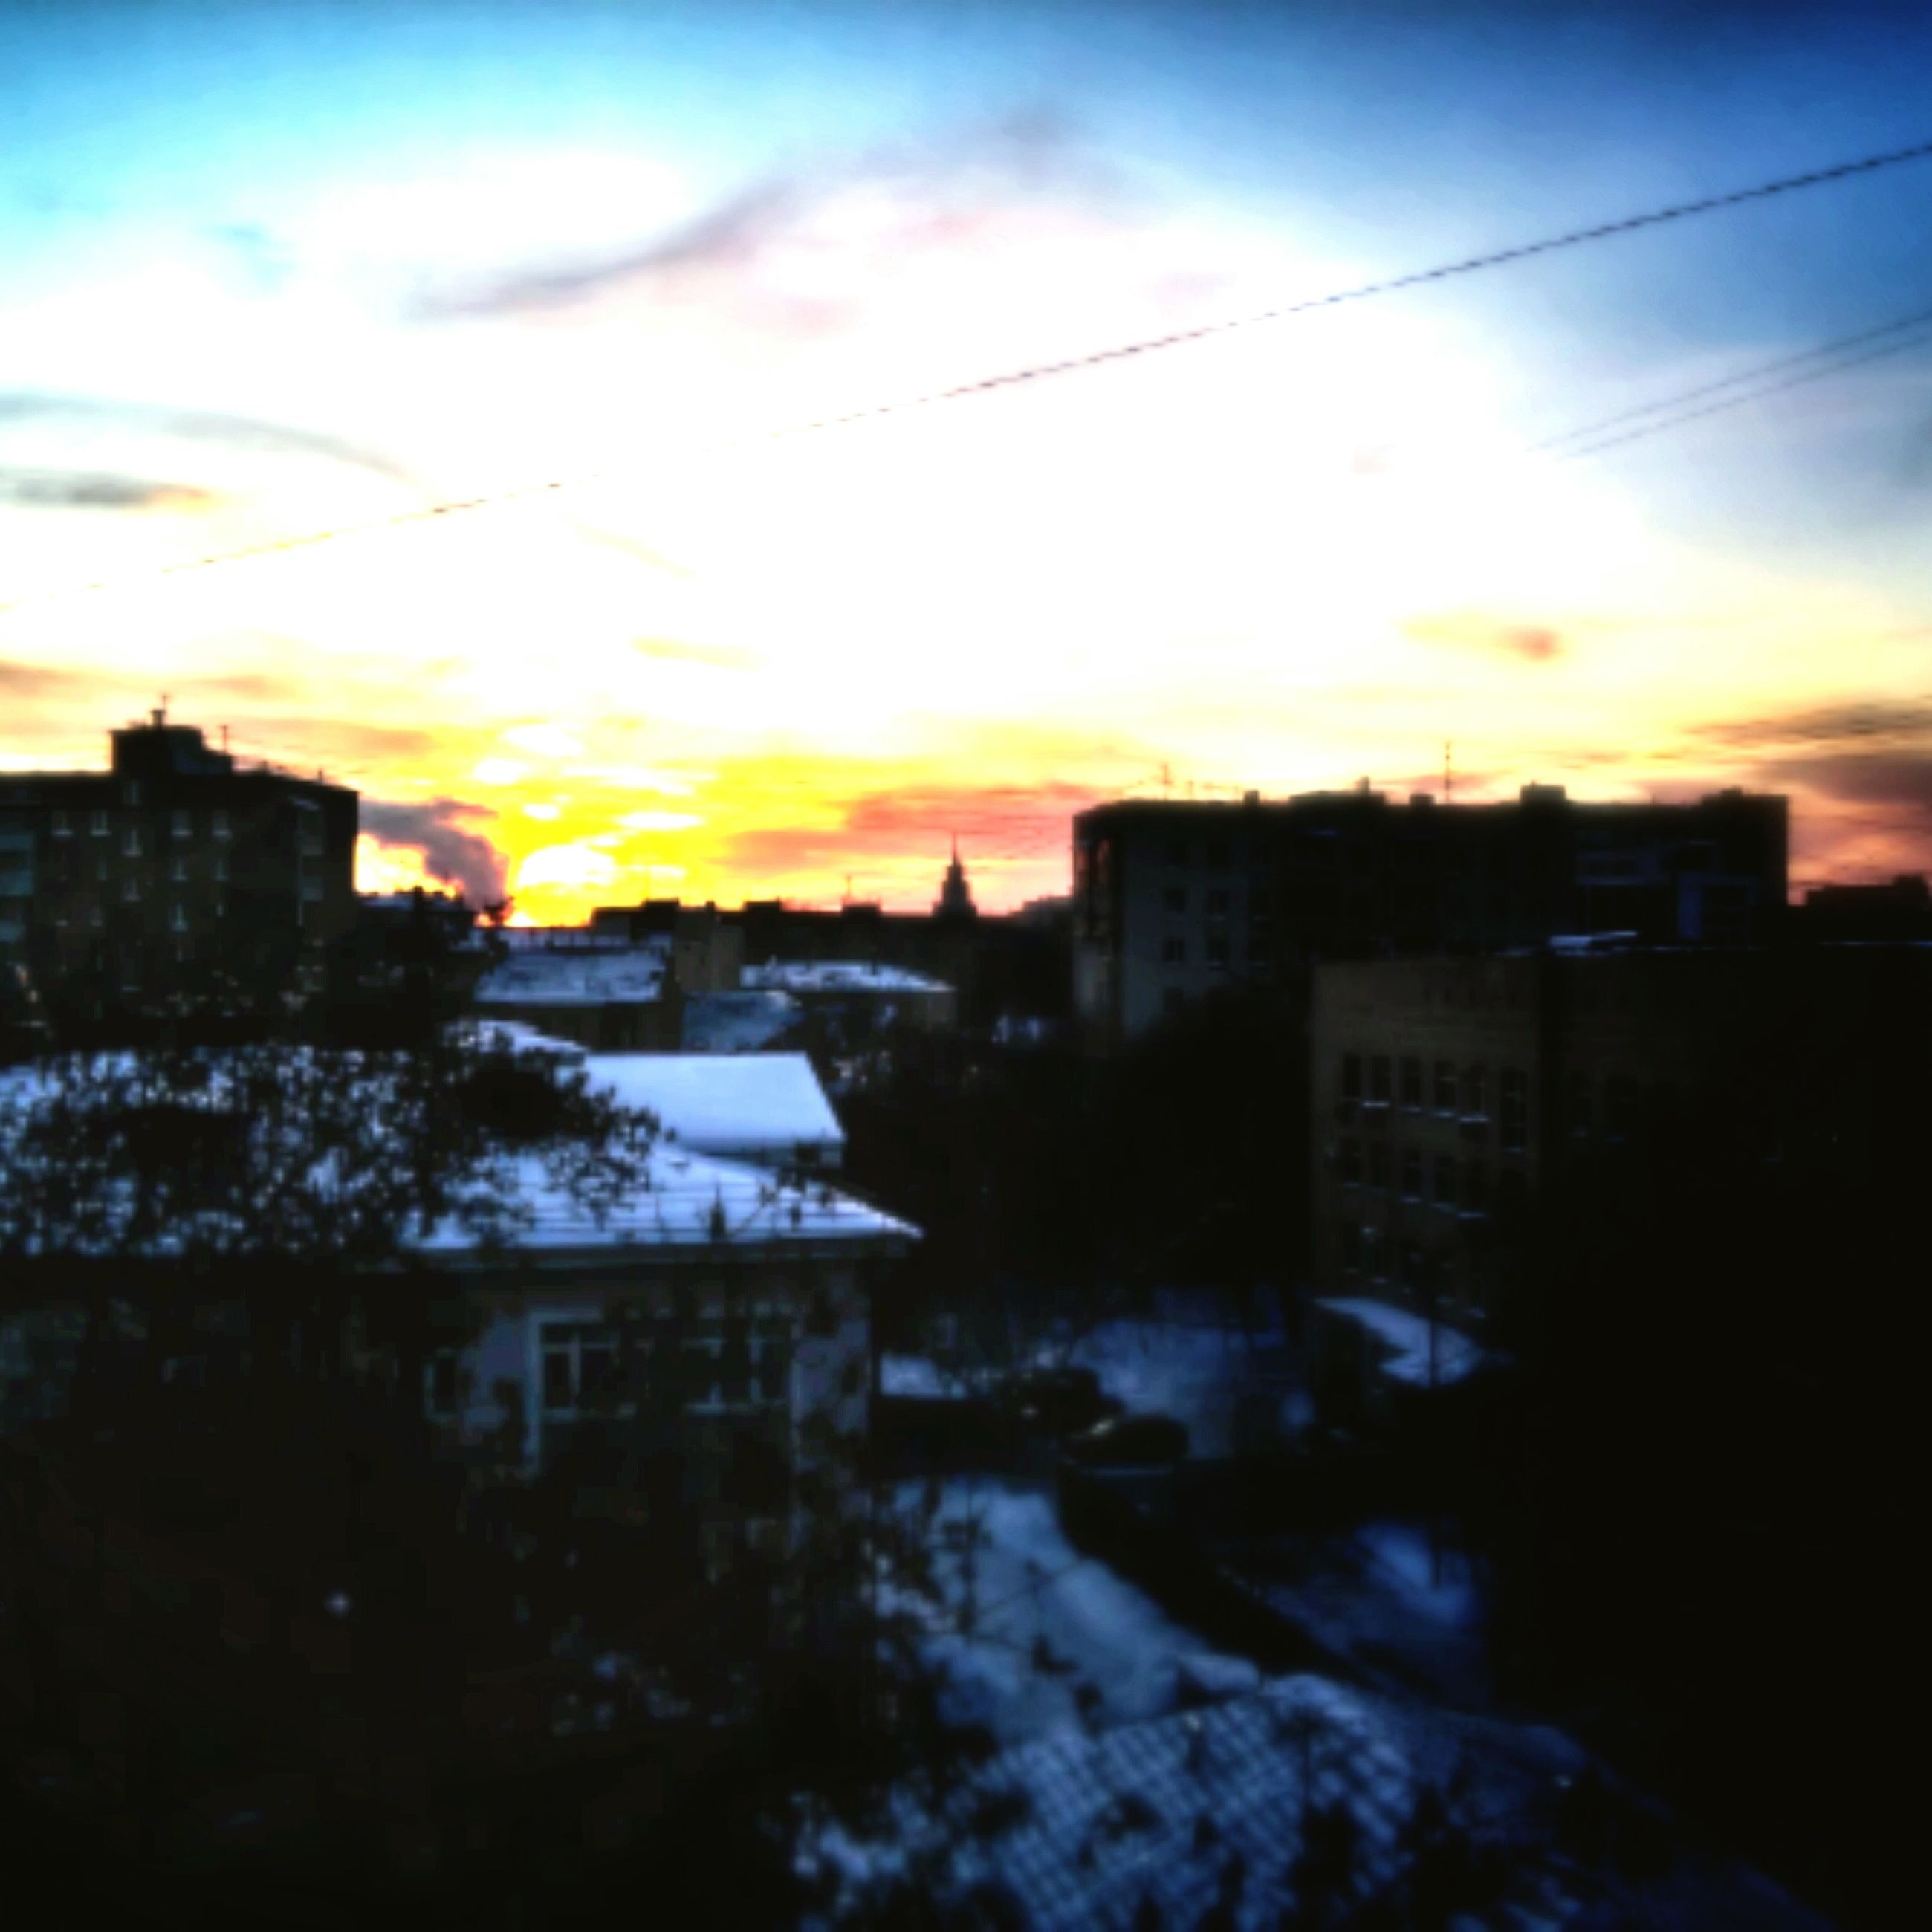 sunset, building exterior, architecture, built structure, sky, cold temperature, city, snow, winter, season, residential structure, residential building, cloud - sky, house, weather, orange color, residential district, water, cityscape, sun